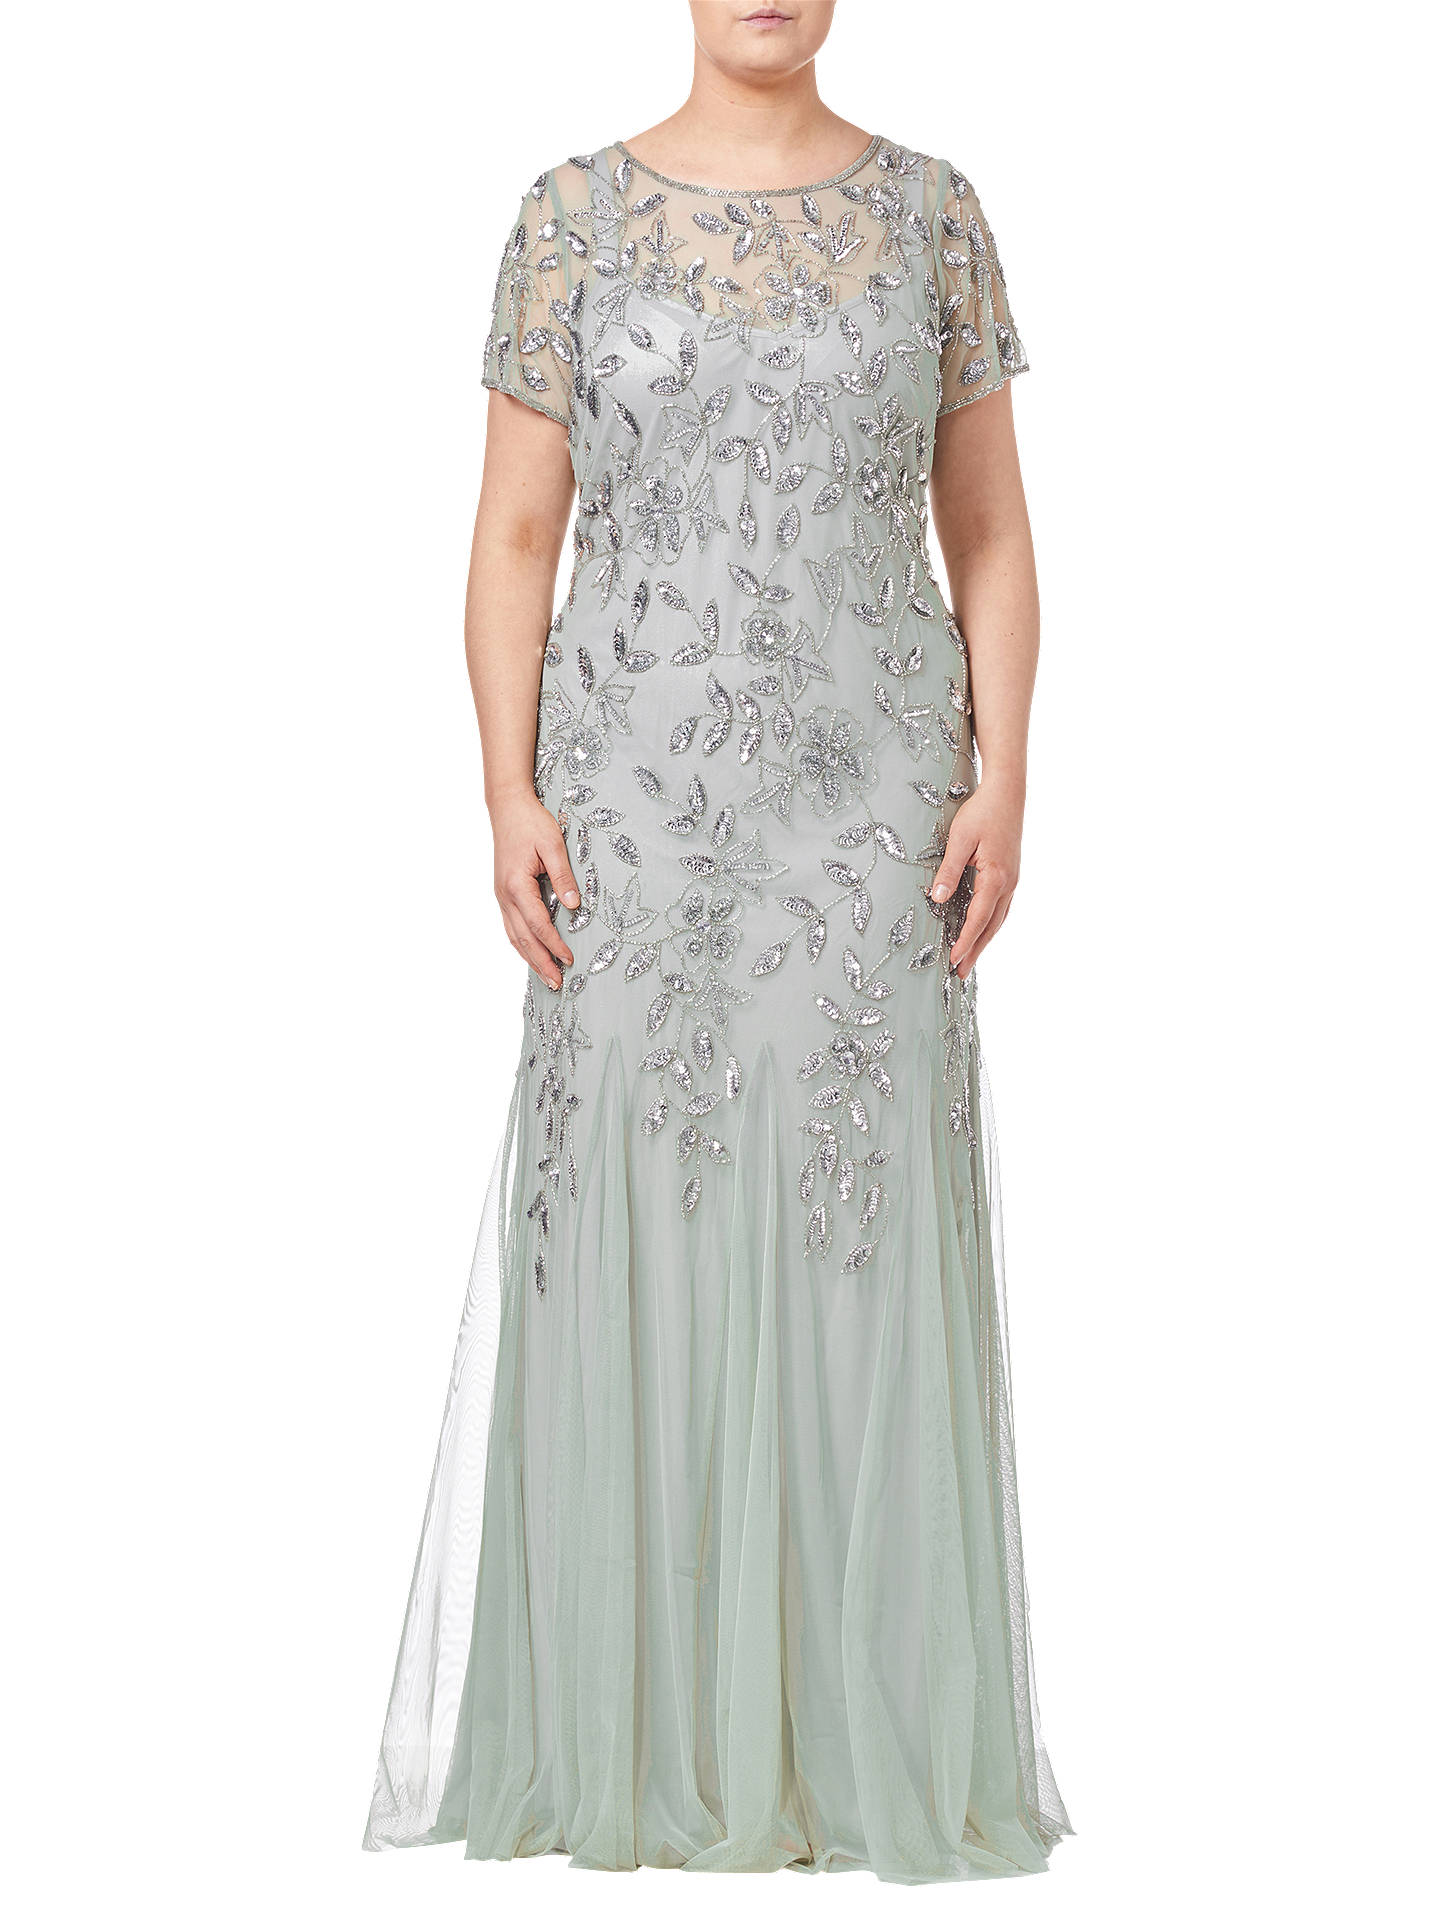 BuyAdrianna Papell Floral Beaded Godet Dress, Mint, 24 Online at johnlewis.com